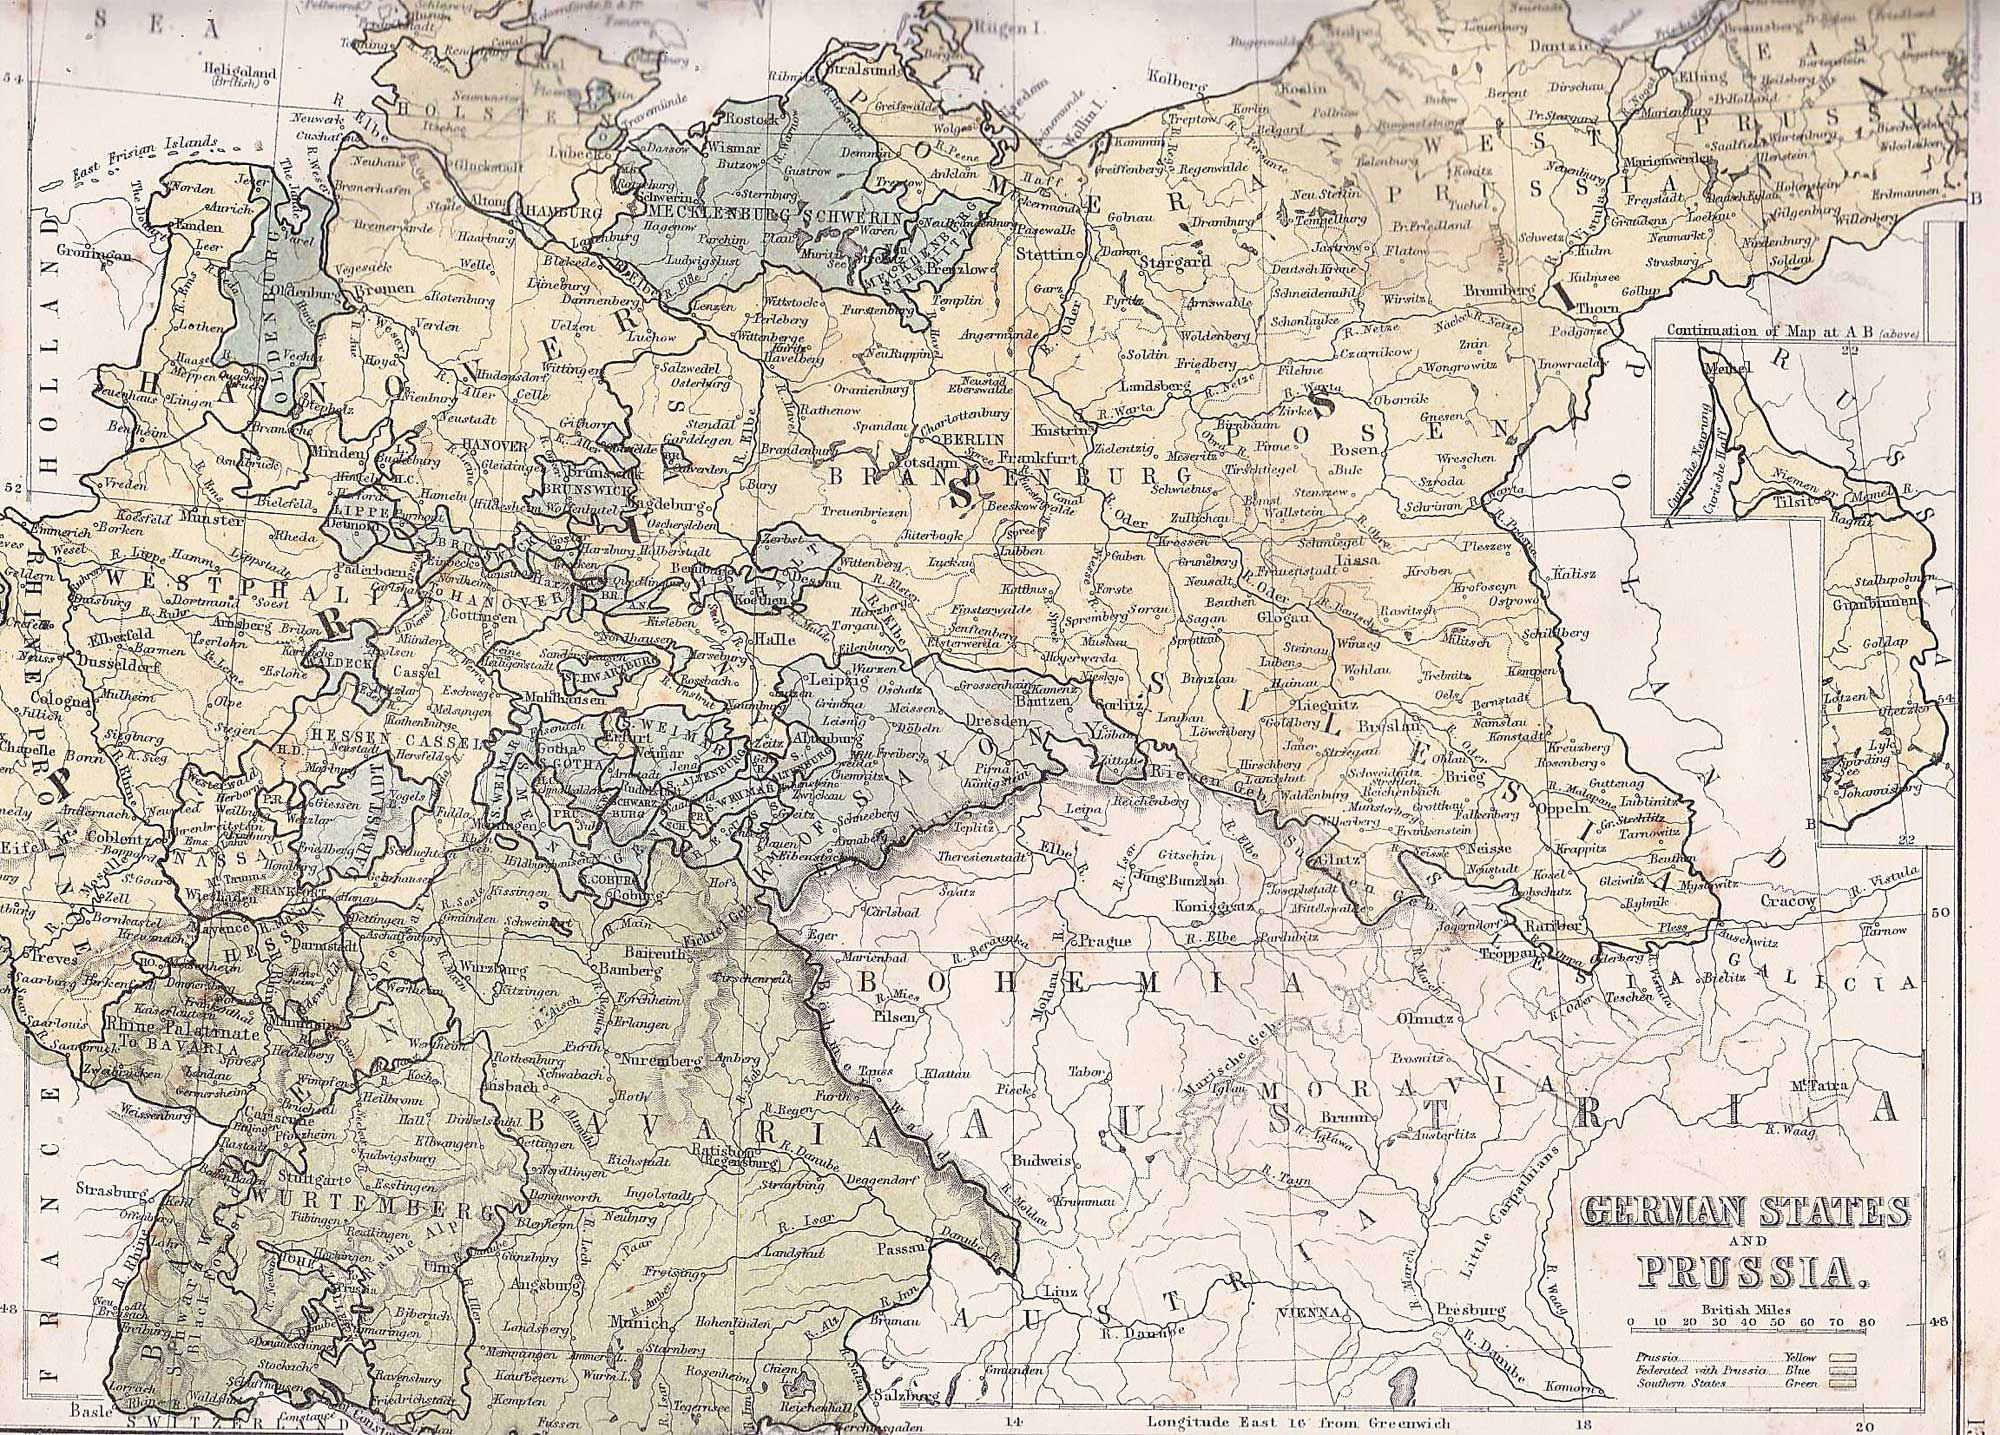 Nazi Military Poster Map Germany Russian 4k Hd German State Of Prussia Map 1753726 Hd Wallpaper Backgrounds Download